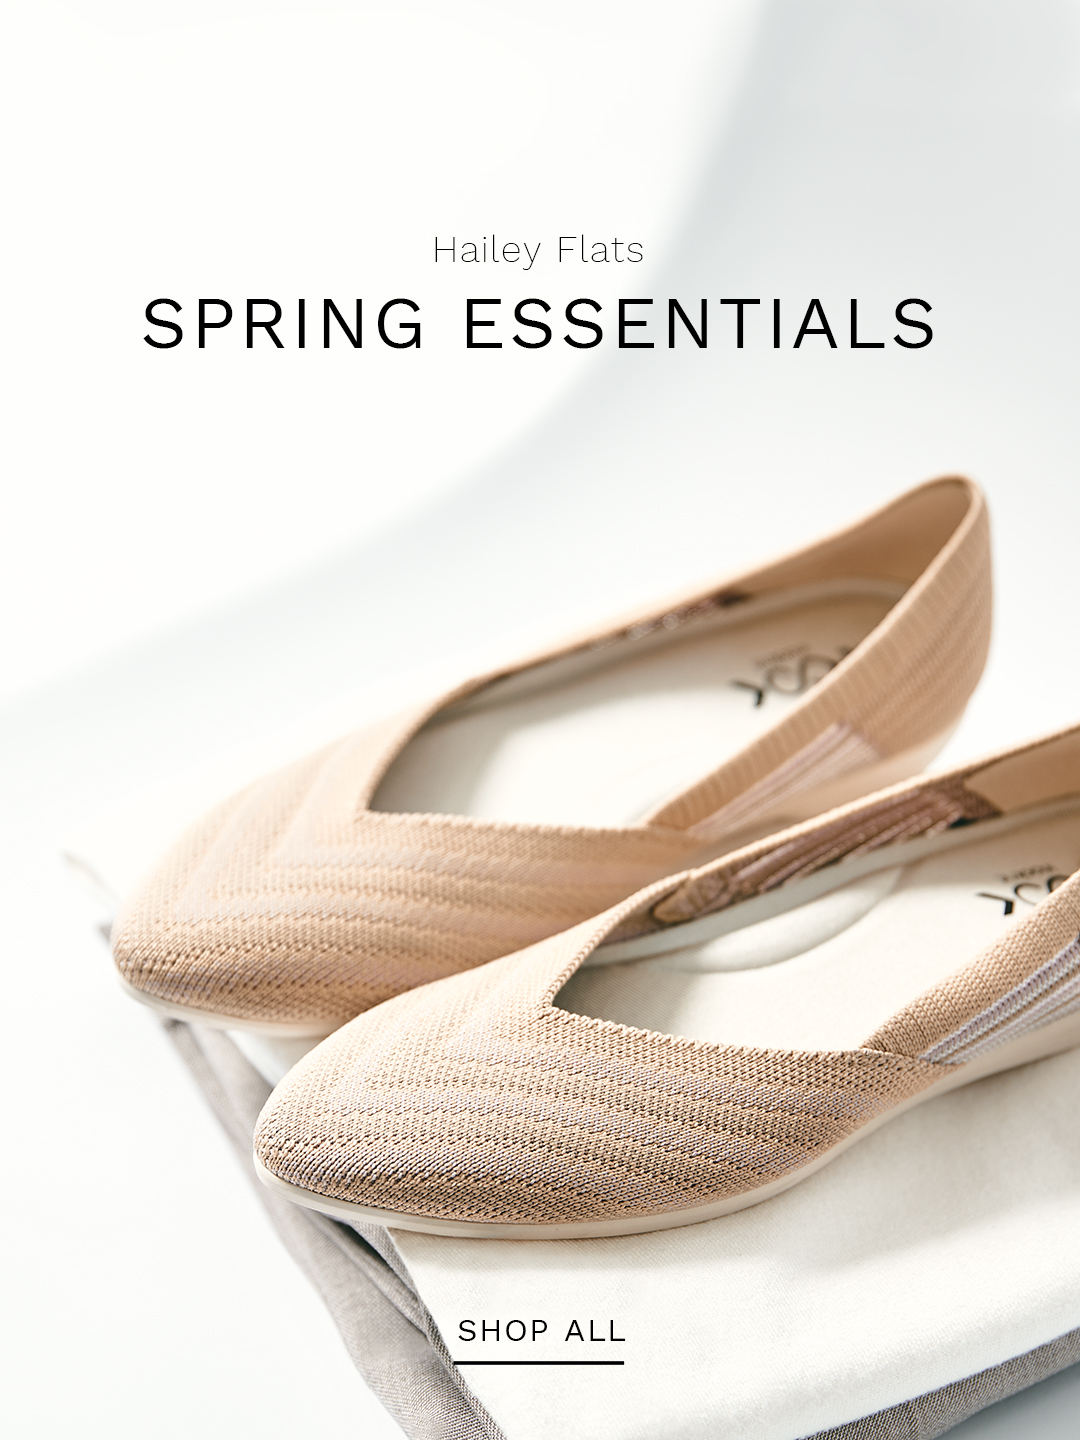 Spring Essential-Hailey